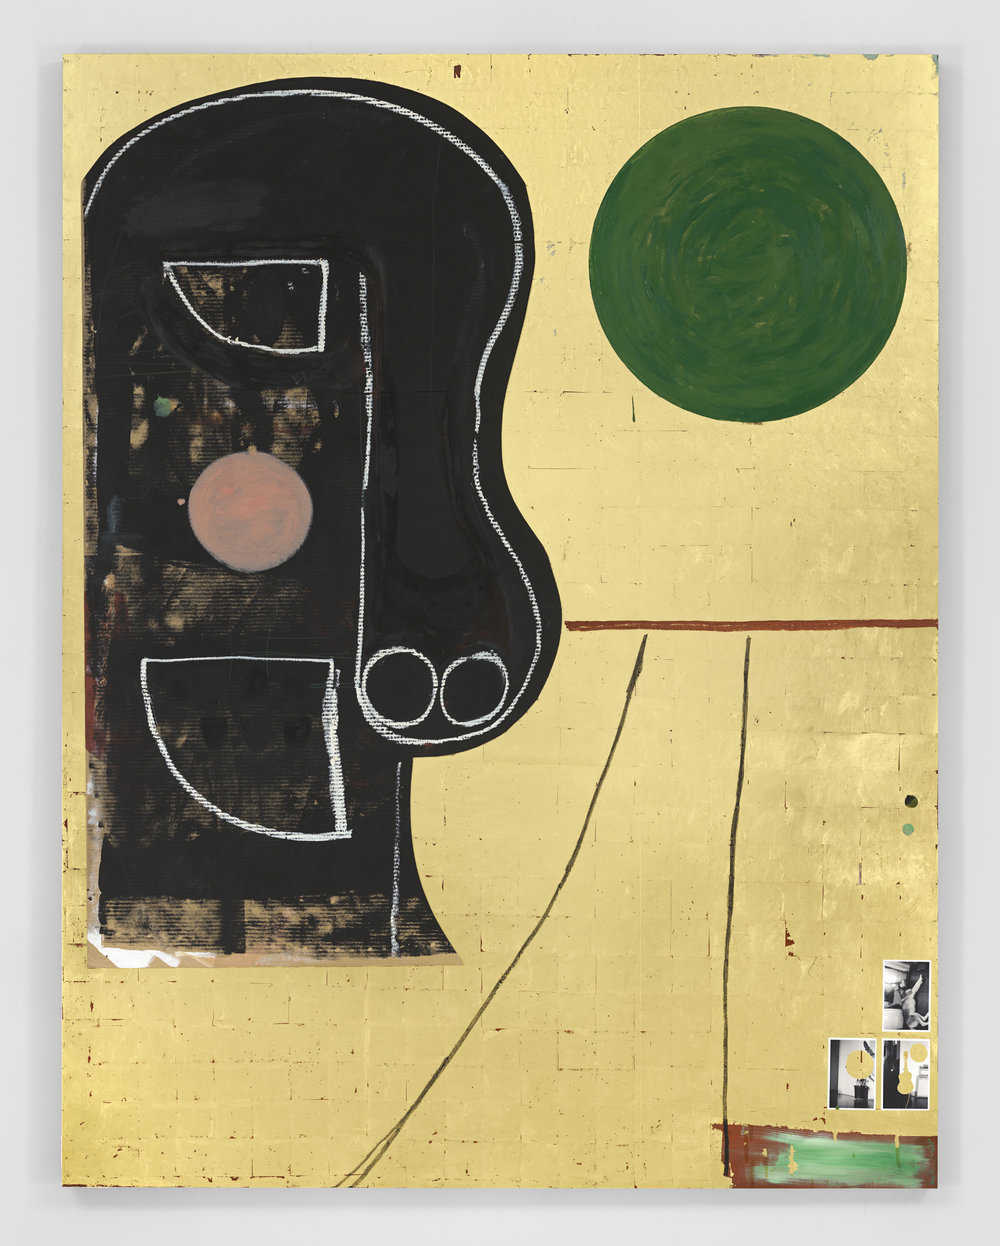 Dave McDermott - Then & Now 2016,Oil, oil stick, 23k gold, cardboard, Flashe, gesso, photographs, sizing, and wax on panel,237.8 x 182.9 x 5.1 cm   93 5/8 x 7.Copyright the artist.Courtesy of the artist and GRIMM Amsterdam   New York.